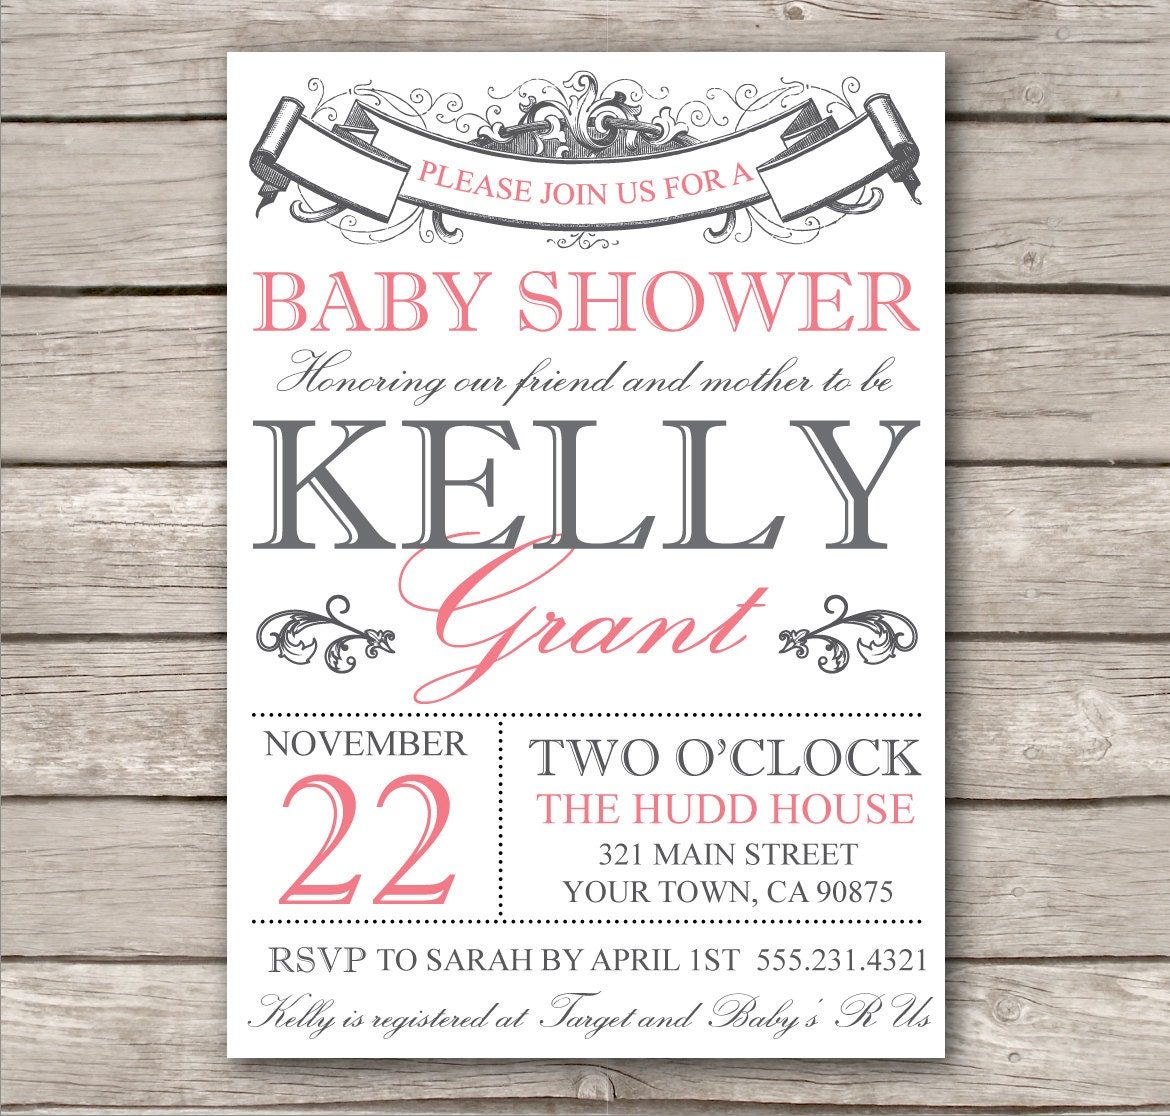 Bridal shower invitation or baby shower invitation by for Online wedding shower invitations